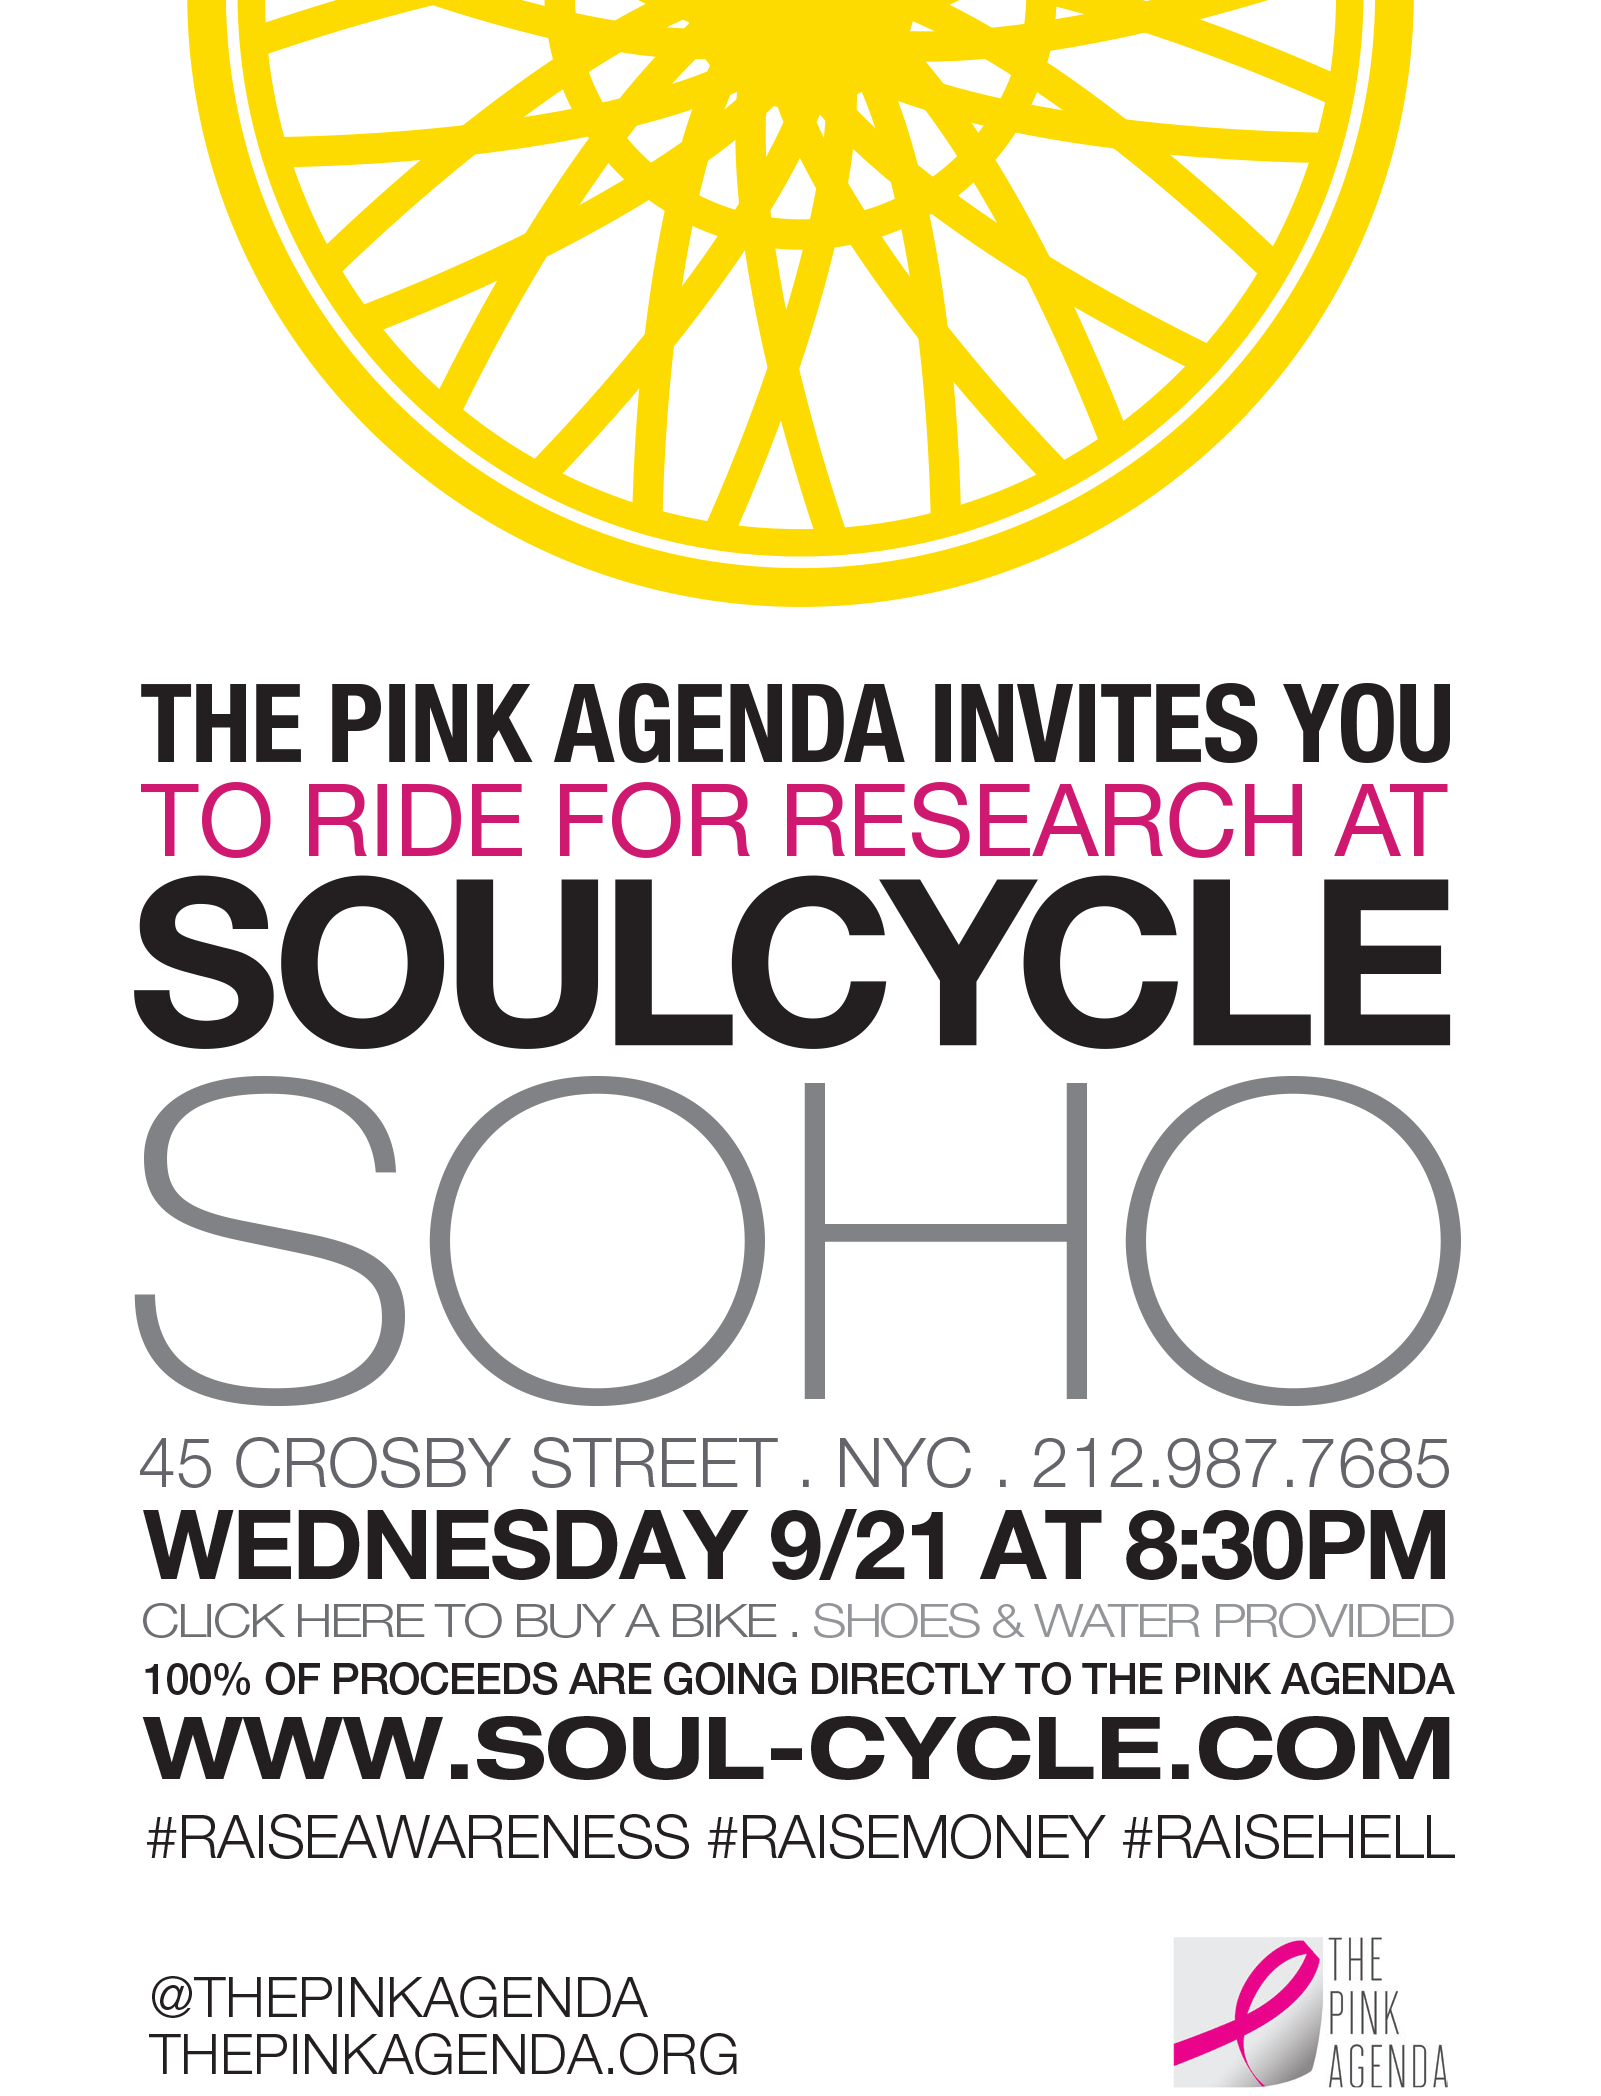 SOHO_THE_PINK_AGENDA_INVITE.png